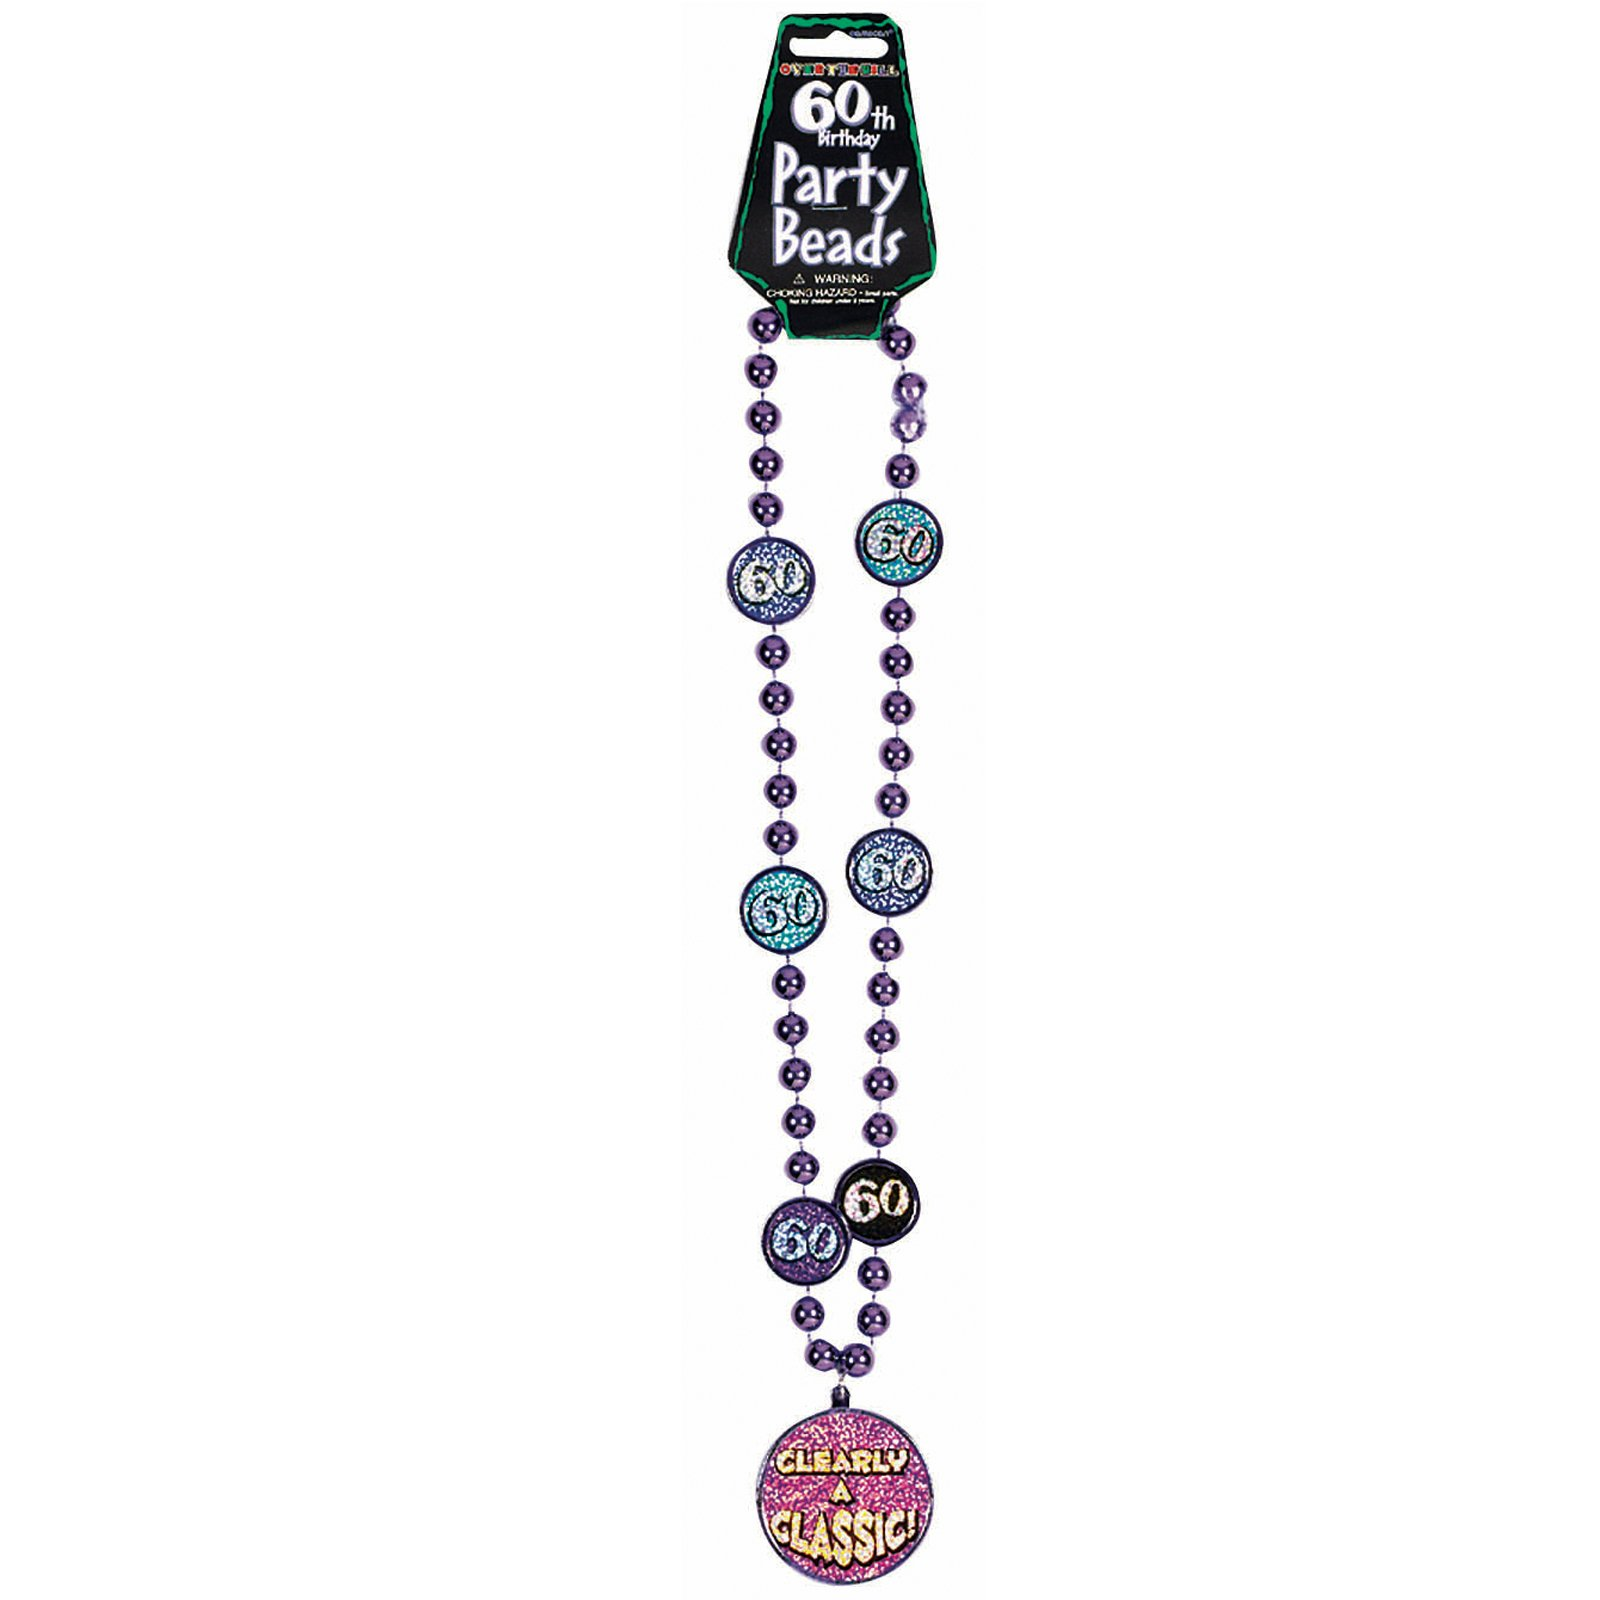 60th Birthday Party Bead Necklace